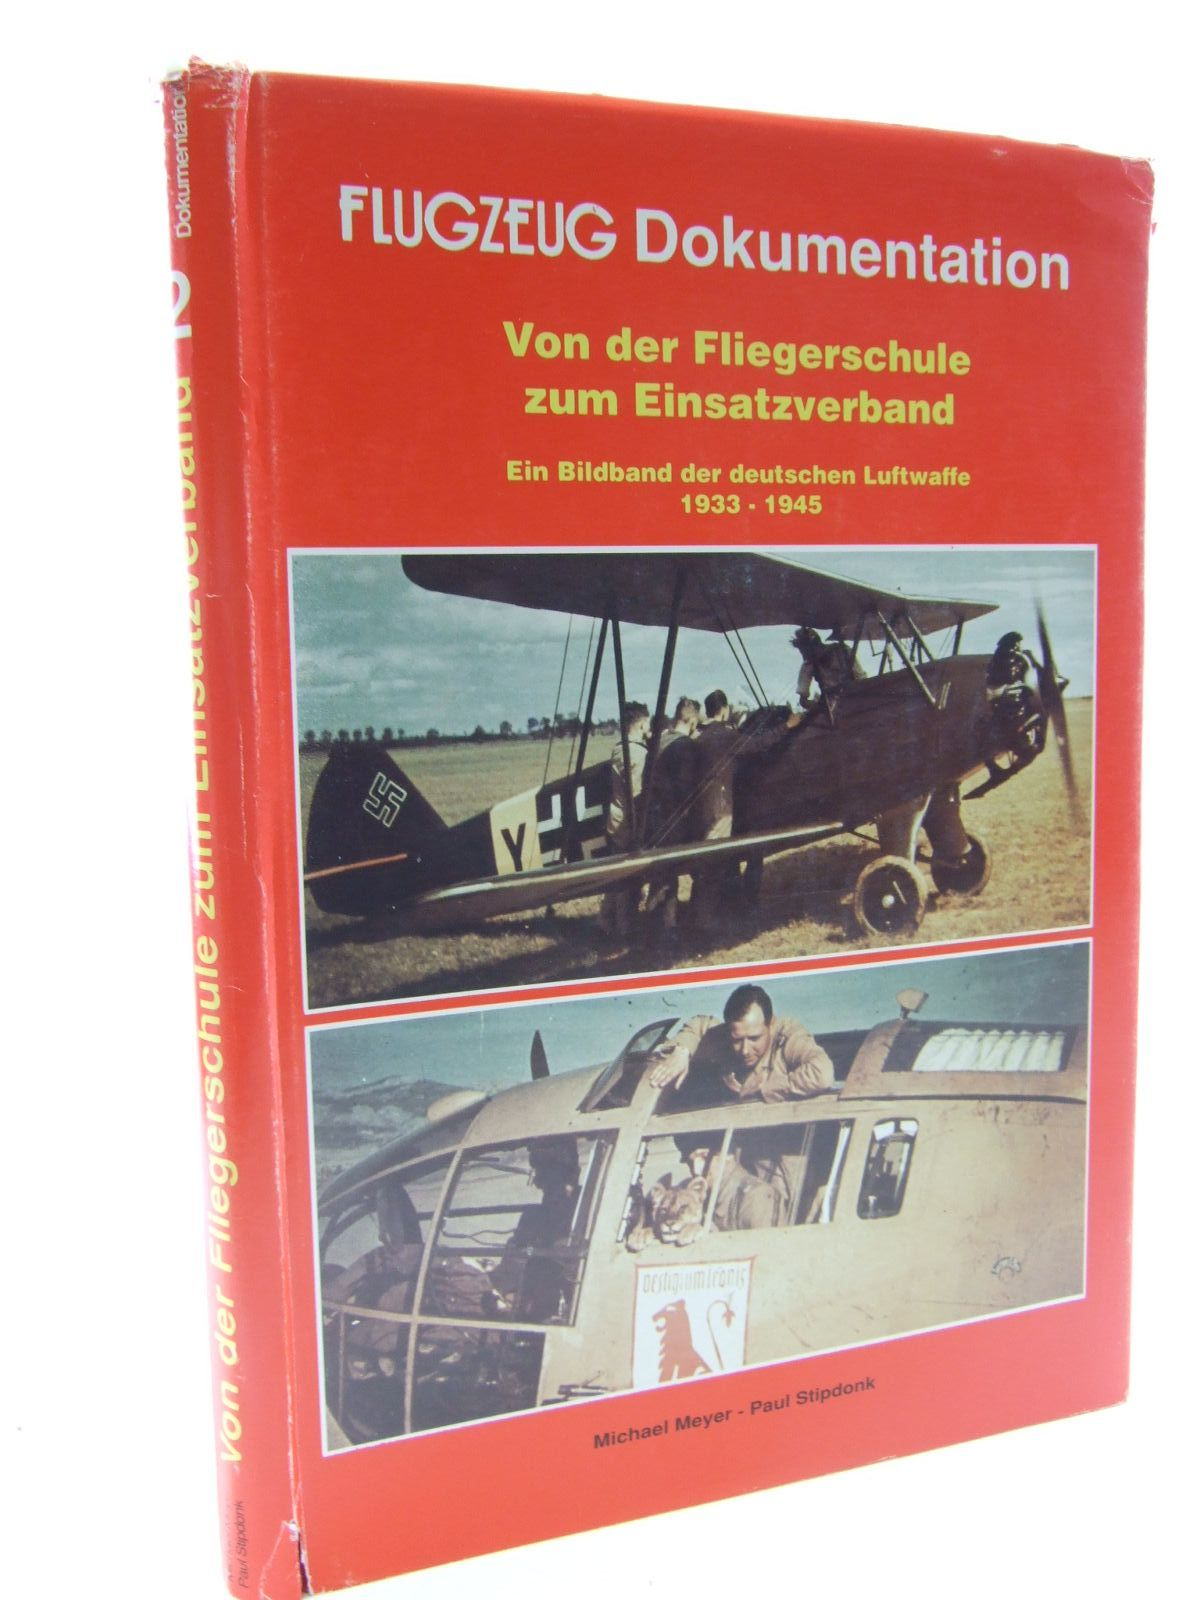 Photo of FROM SCHOOL TO STATION A PICTORIAL STUDY OF THE GERMAN LUFTWAFFE 1933-1945. written by Meyer, Michael<br />Stipdonk, Paul published by Flugzeug Publikations Gmbh (STOCK CODE: 1706383)  for sale by Stella & Rose's Books